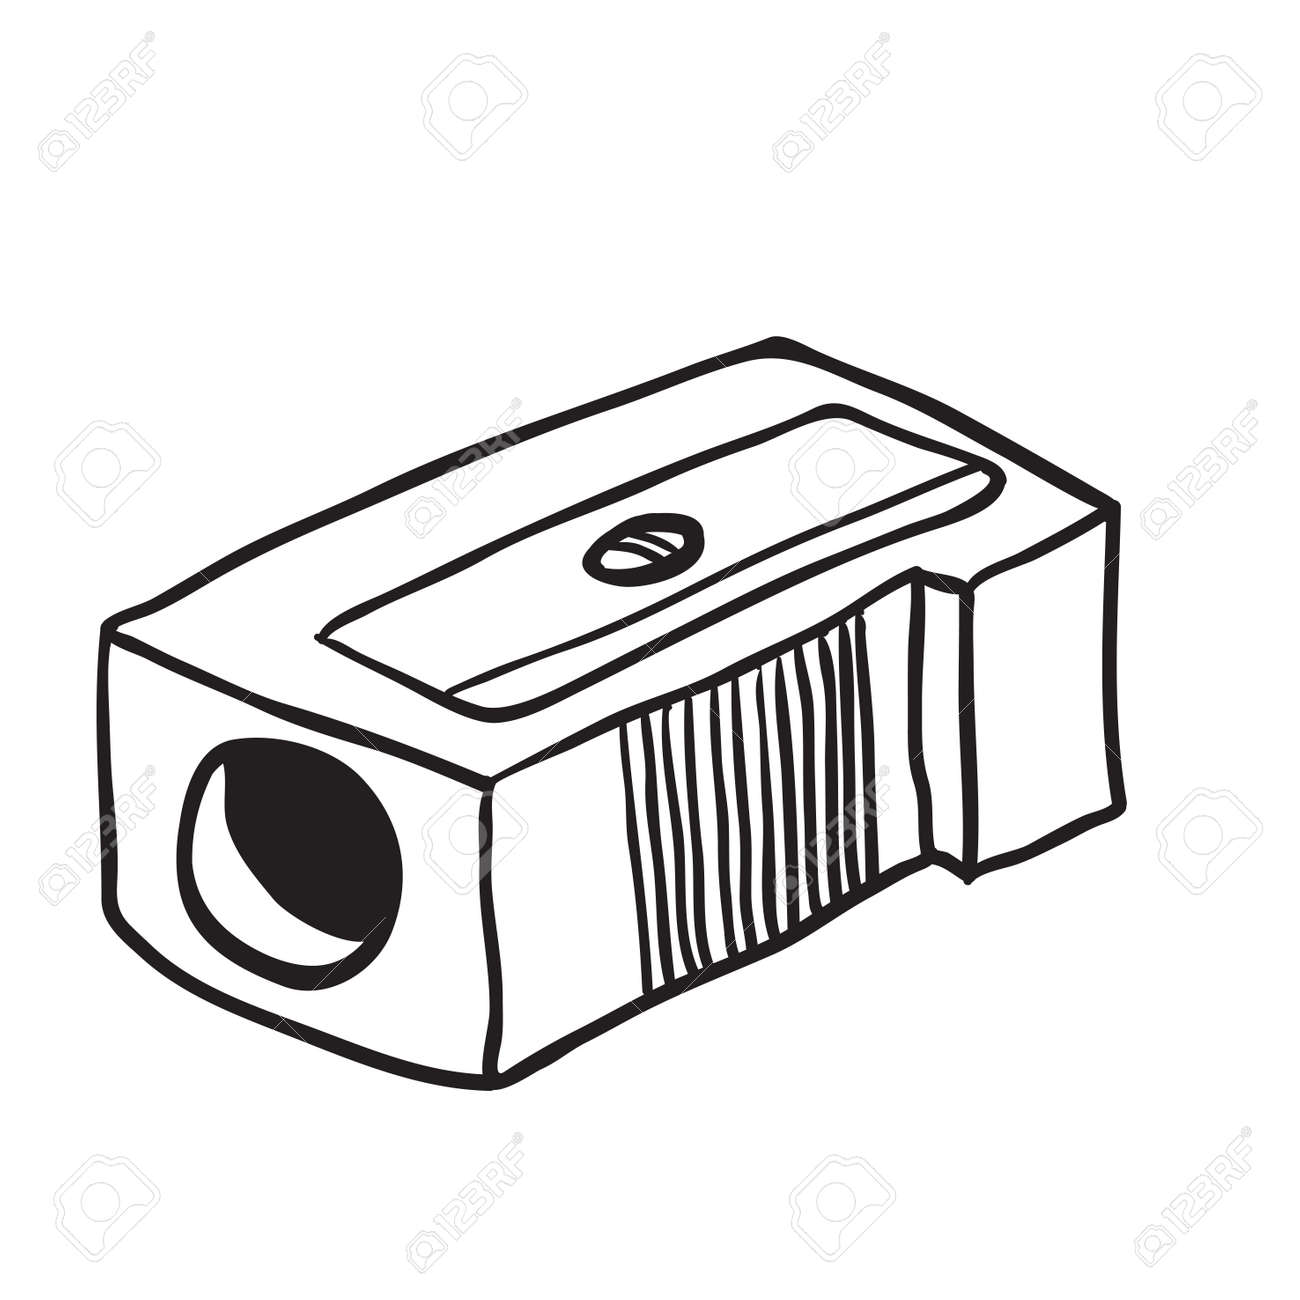 simple black and white pencil sharpener cartoon royalty free